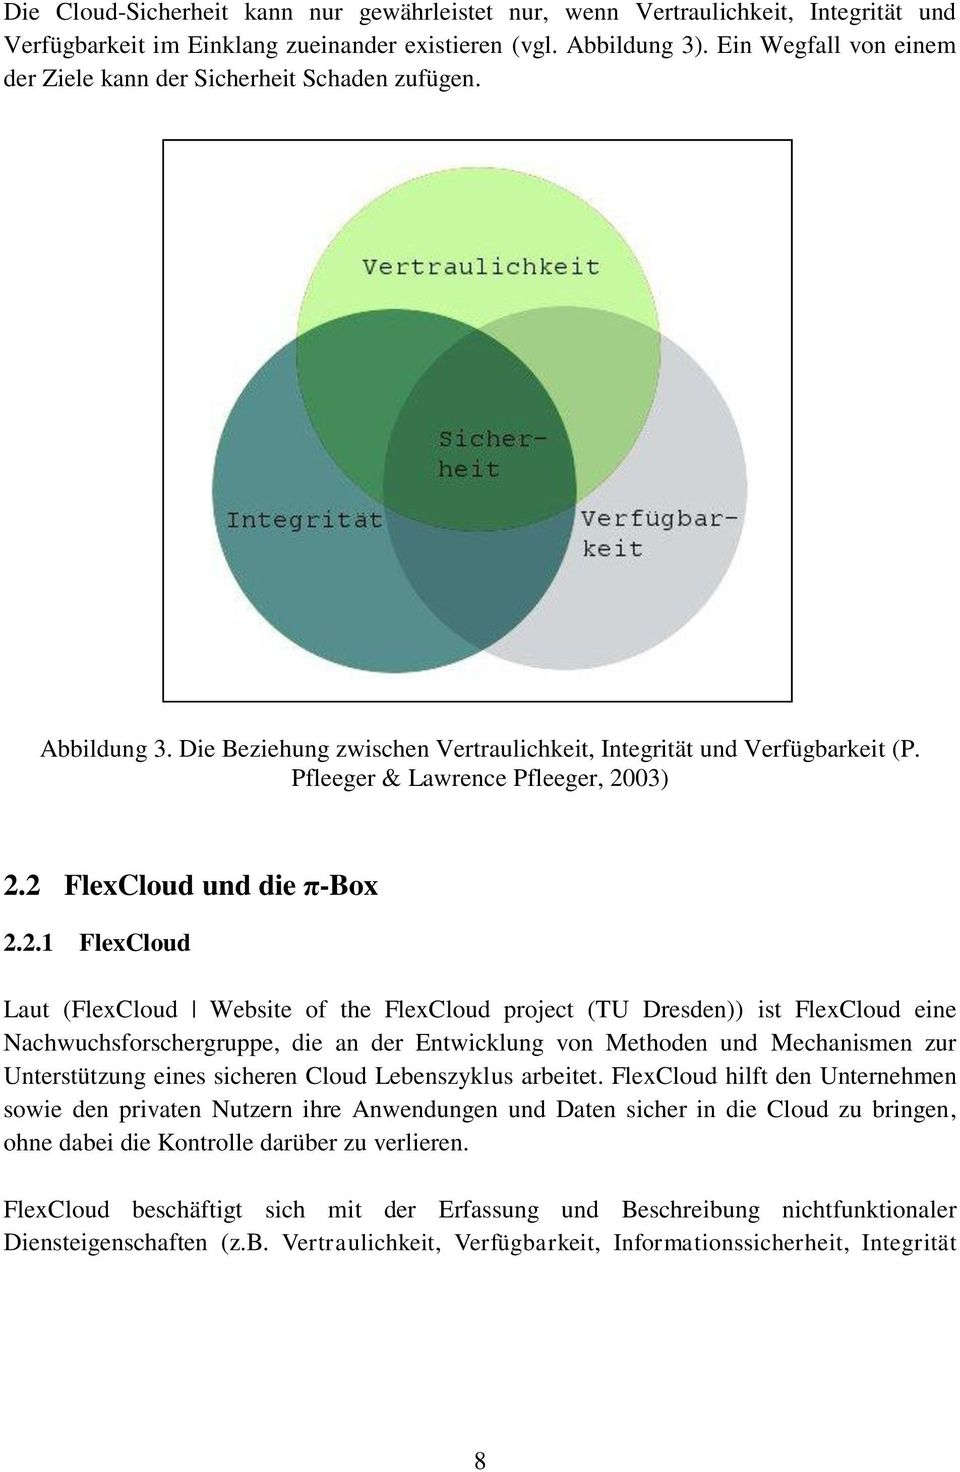 2 FlexCloud und die π-box 2.2.1 FlexCloud Laut (FlexCloud Website of the FlexCloud project (TU Dresden)) ist FlexCloud eine Nachwuchsforschergruppe, die an der Entwicklung von Methoden und